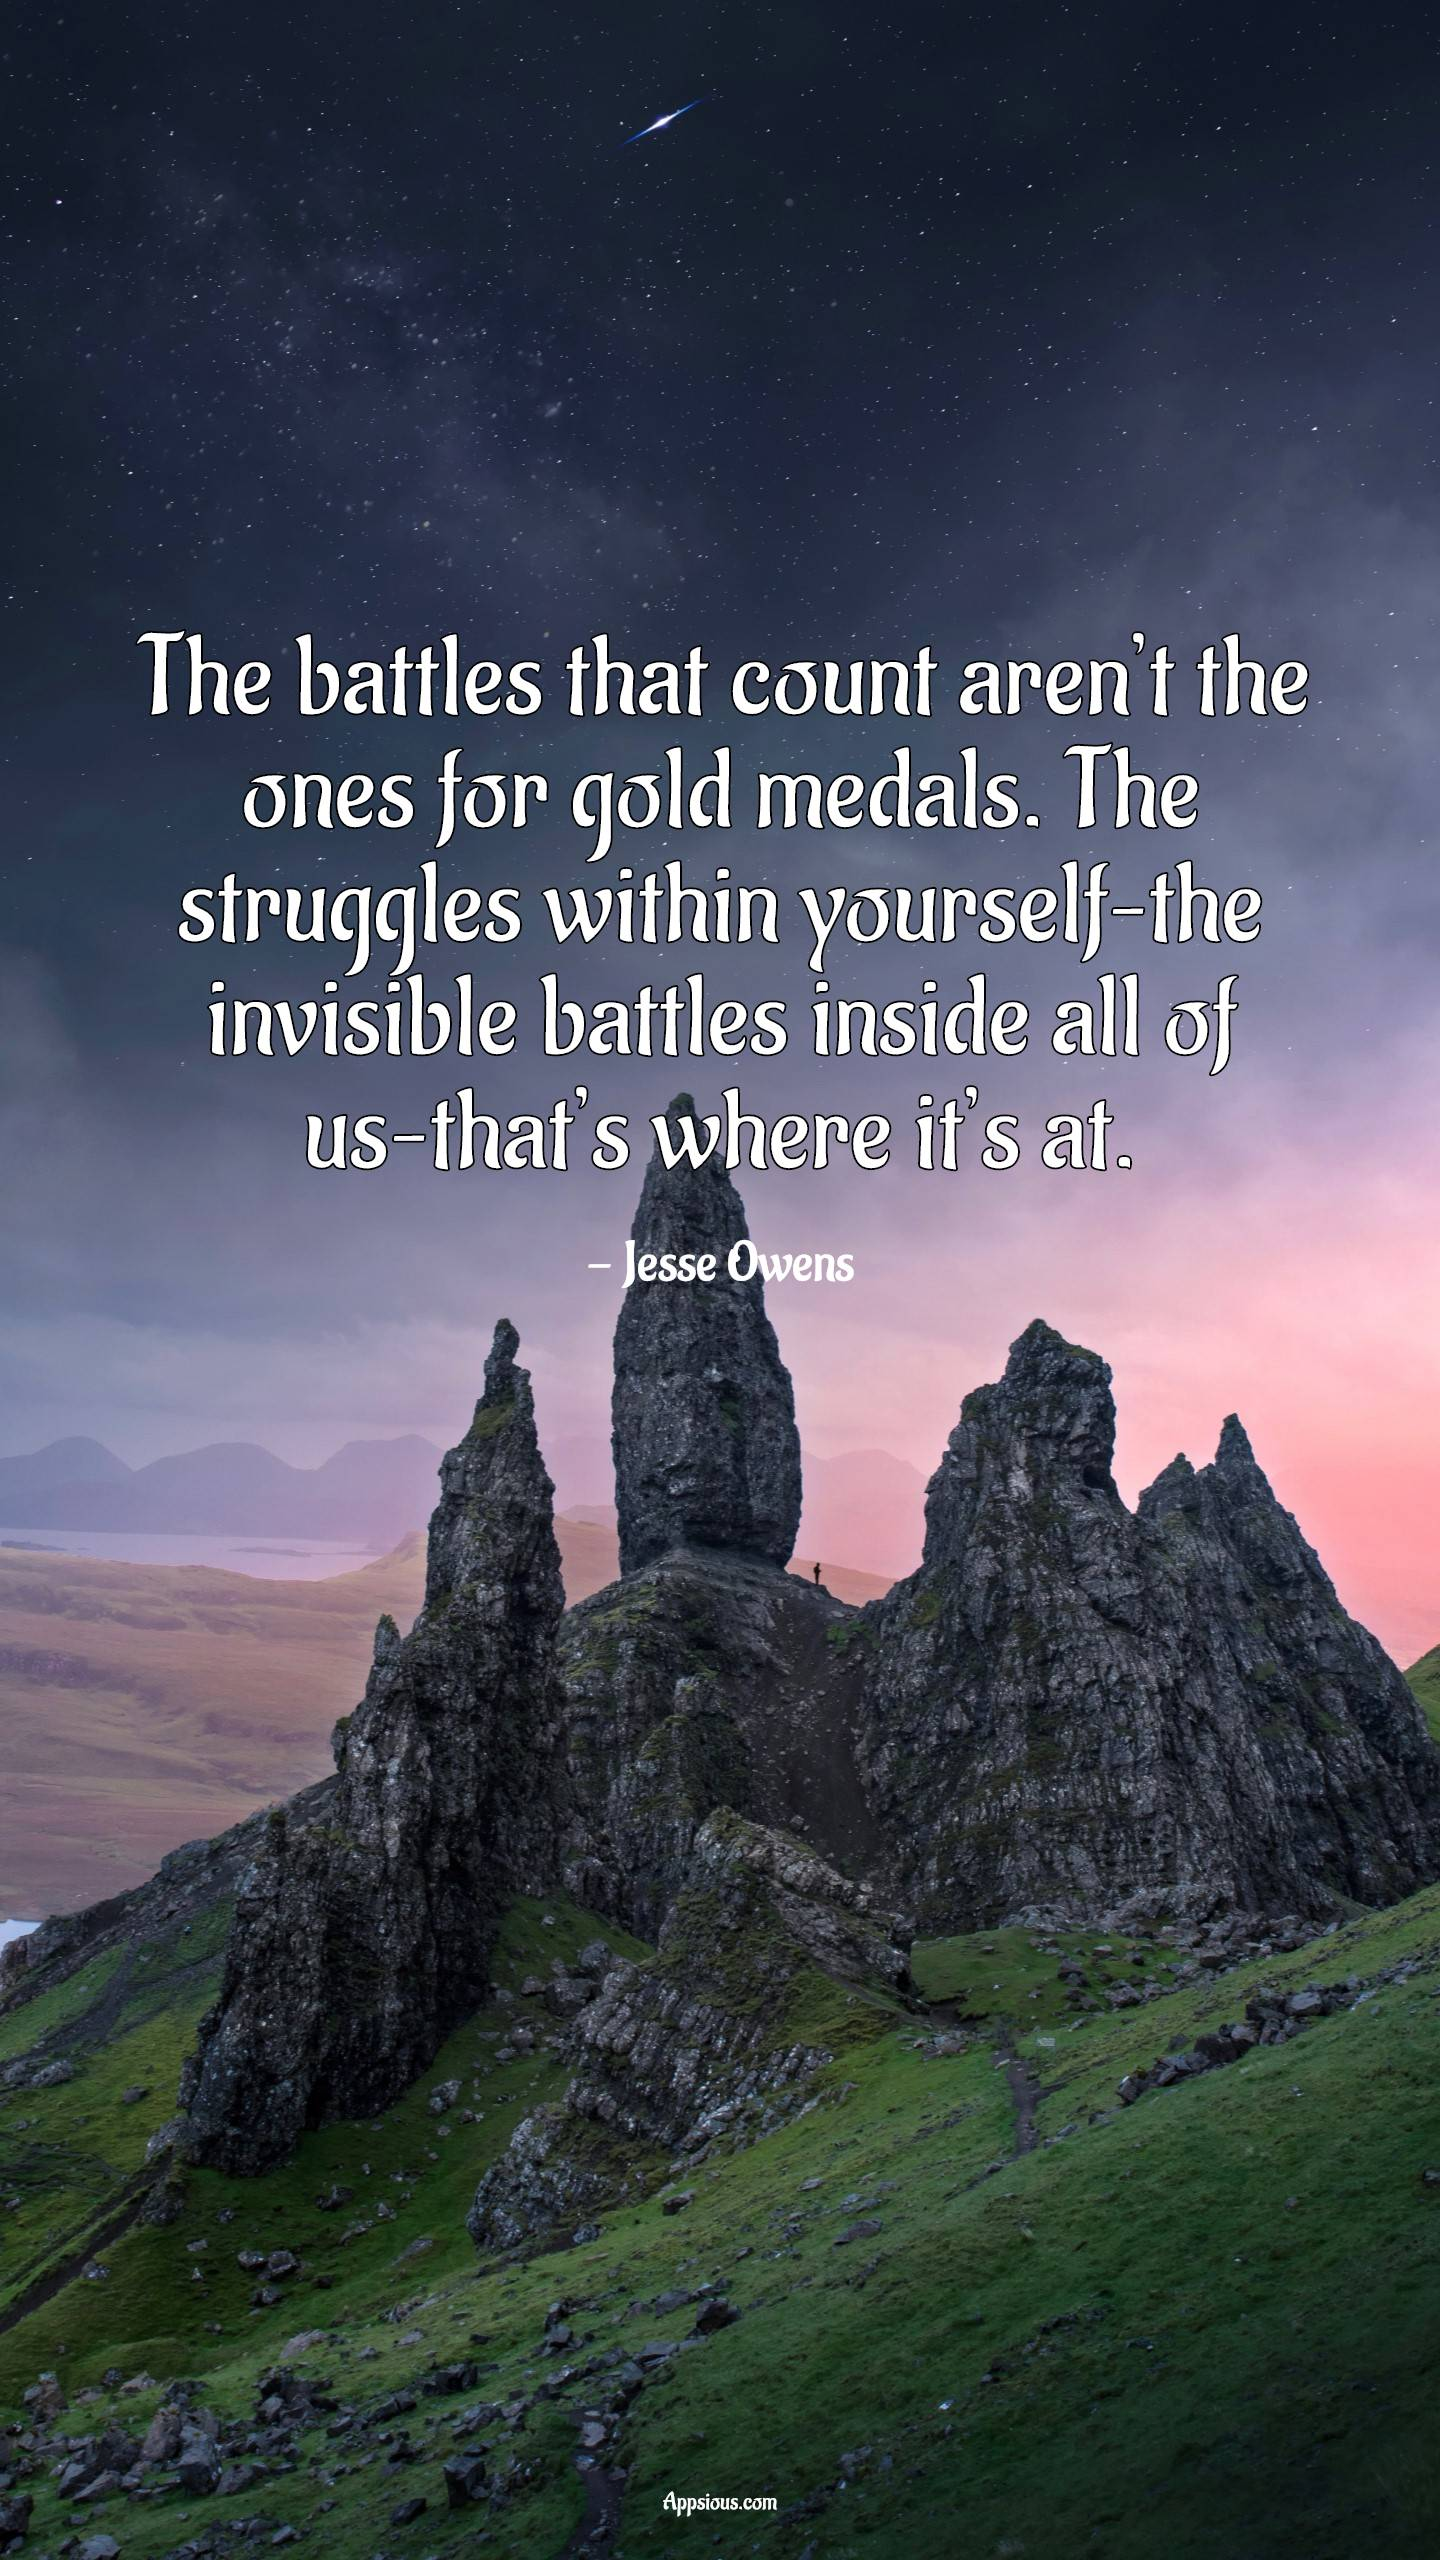 The battles that count aren't the ones for gold medals. The struggles within yourself–the invisible battles inside all of us–that's where it's at.